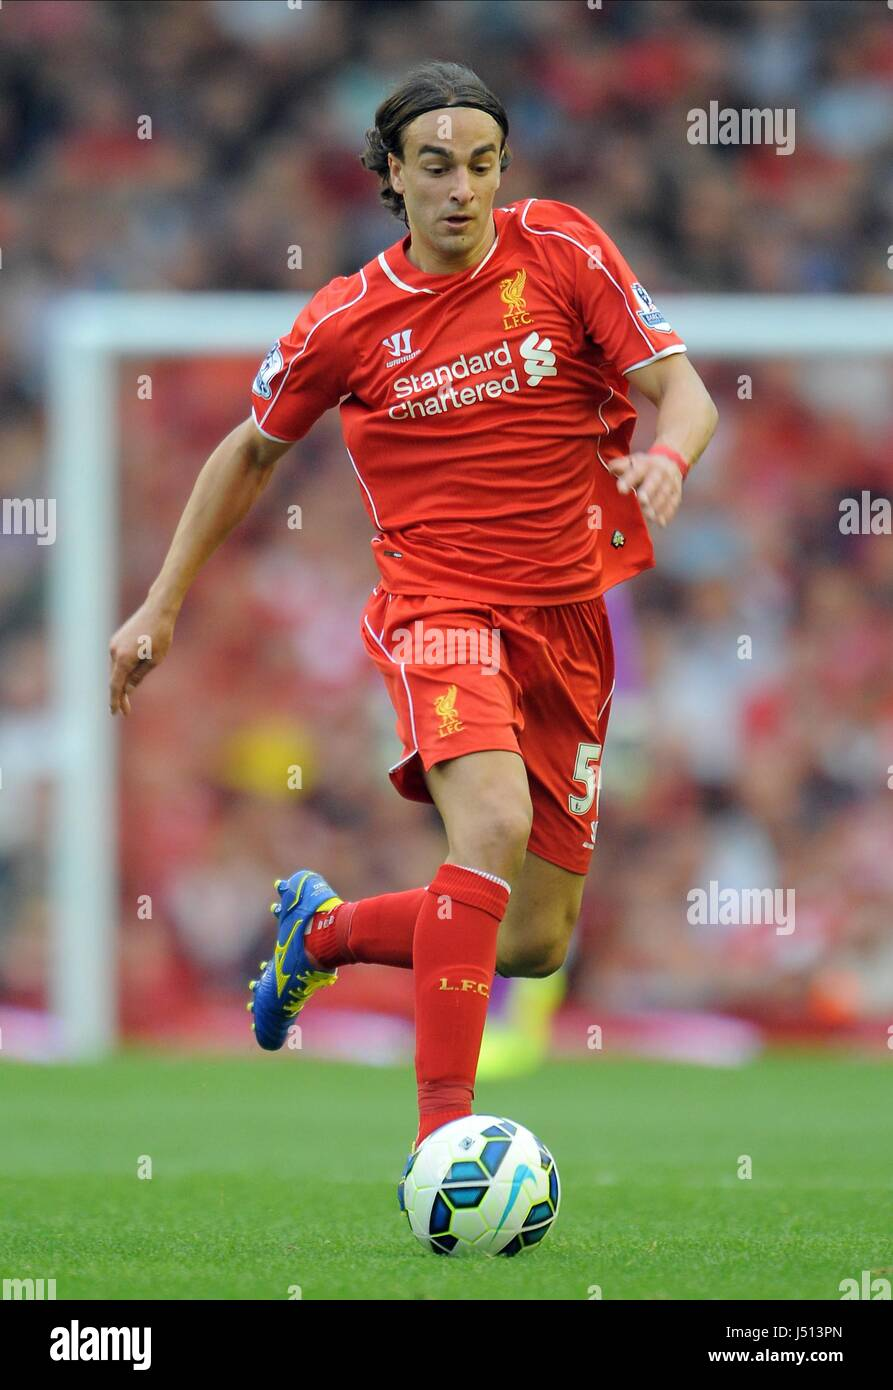 Lazar Markovic High Resolution Stock Photography and Images - Alamy